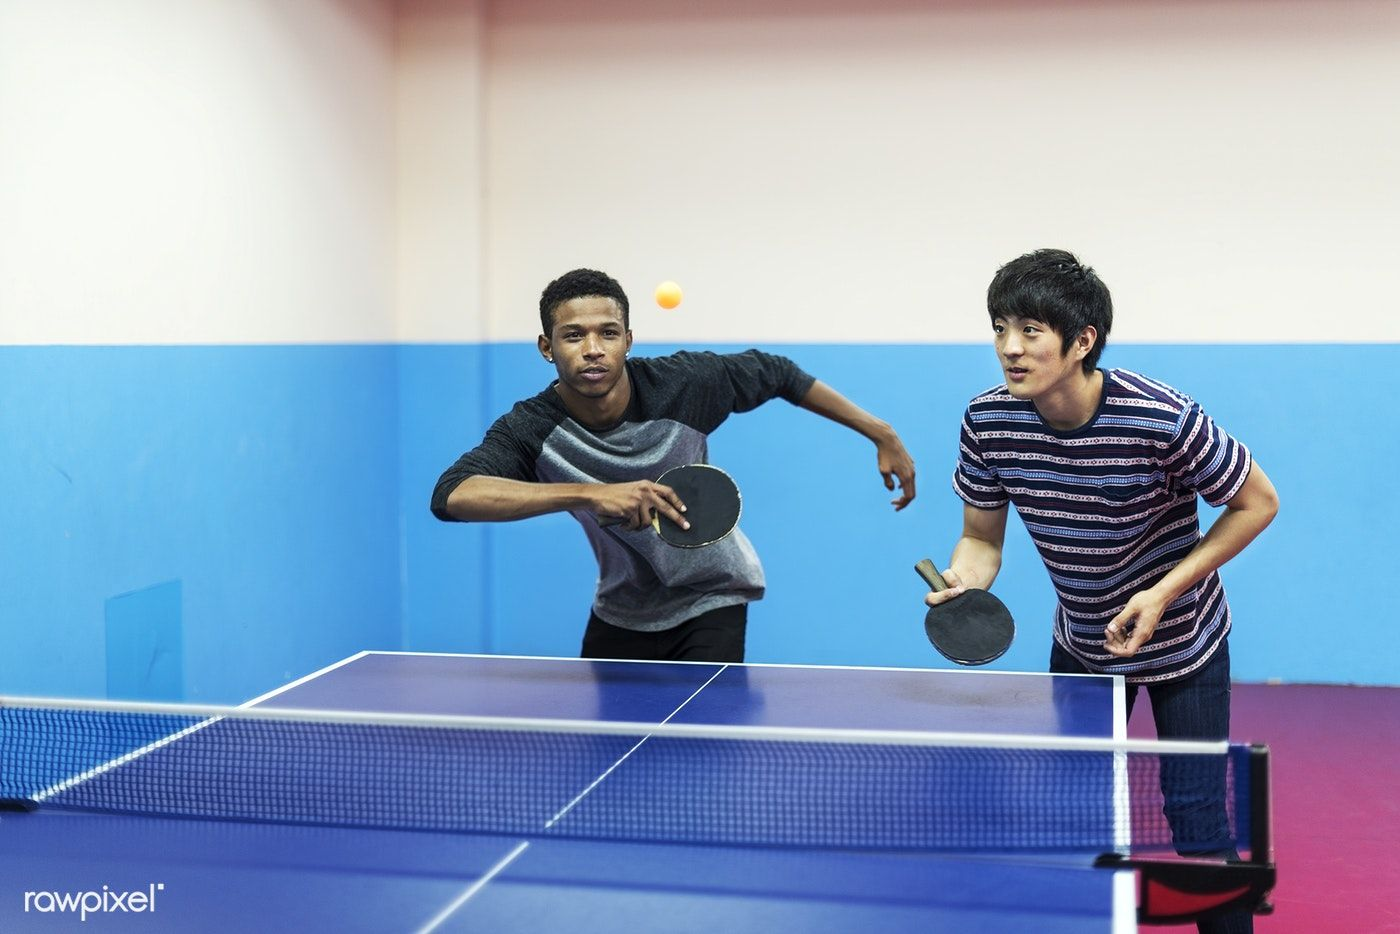 Friends playing table tennis free image by